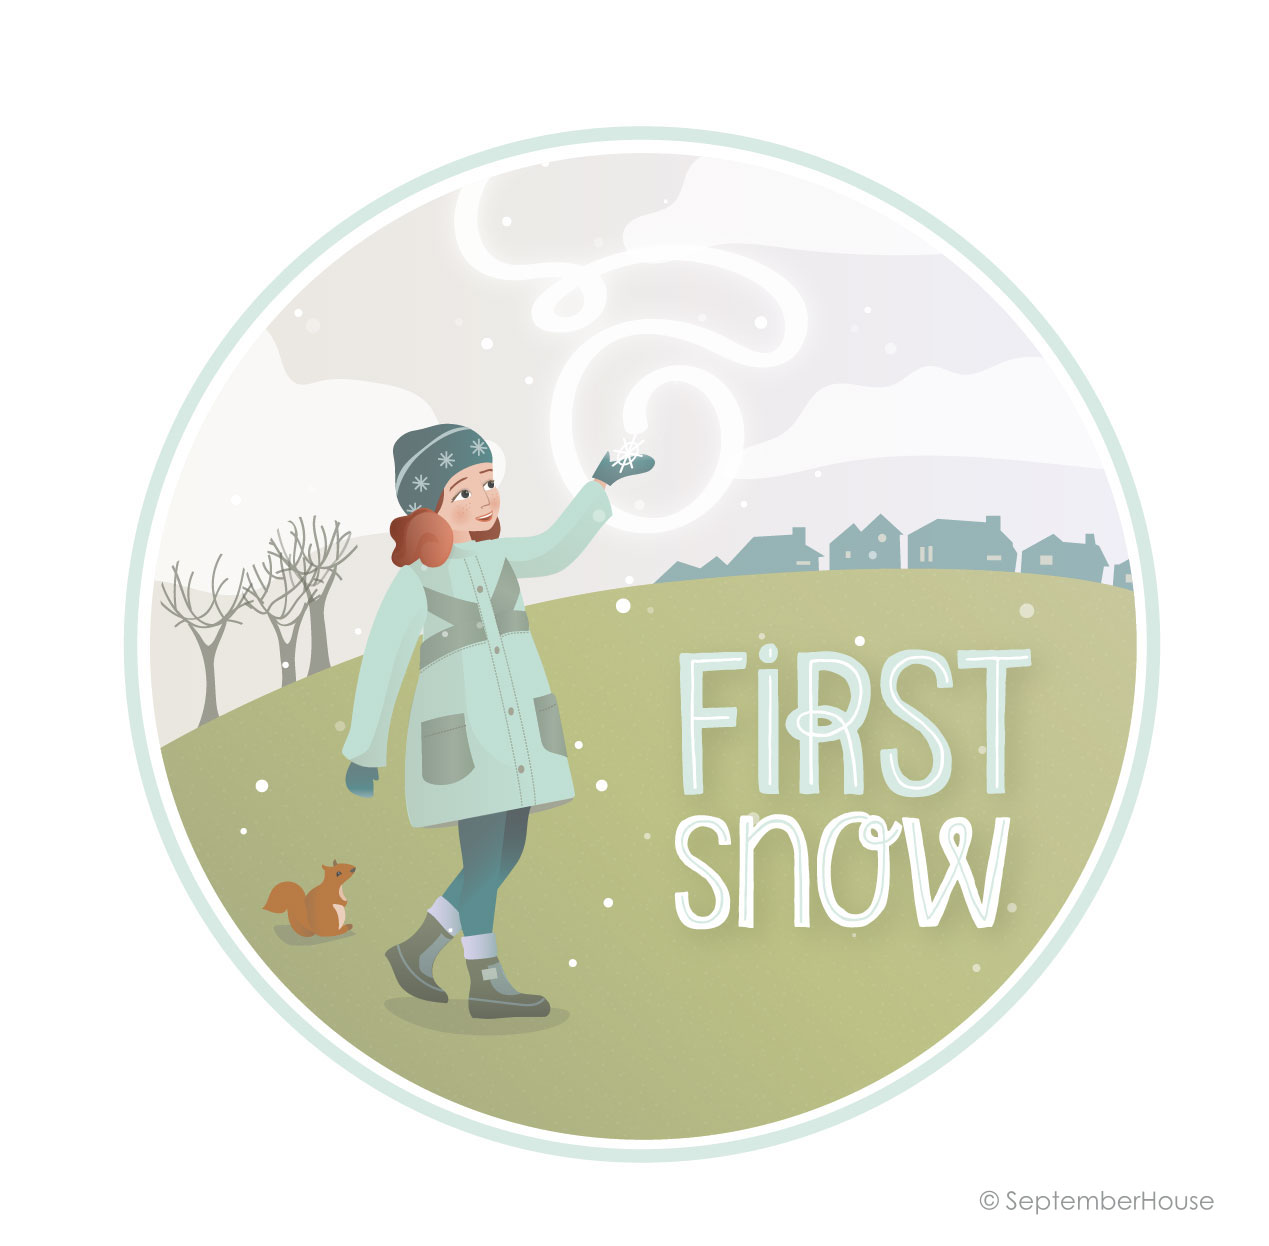 First Snow Winter Illustration, Digital Illustration by SeptemberHouse